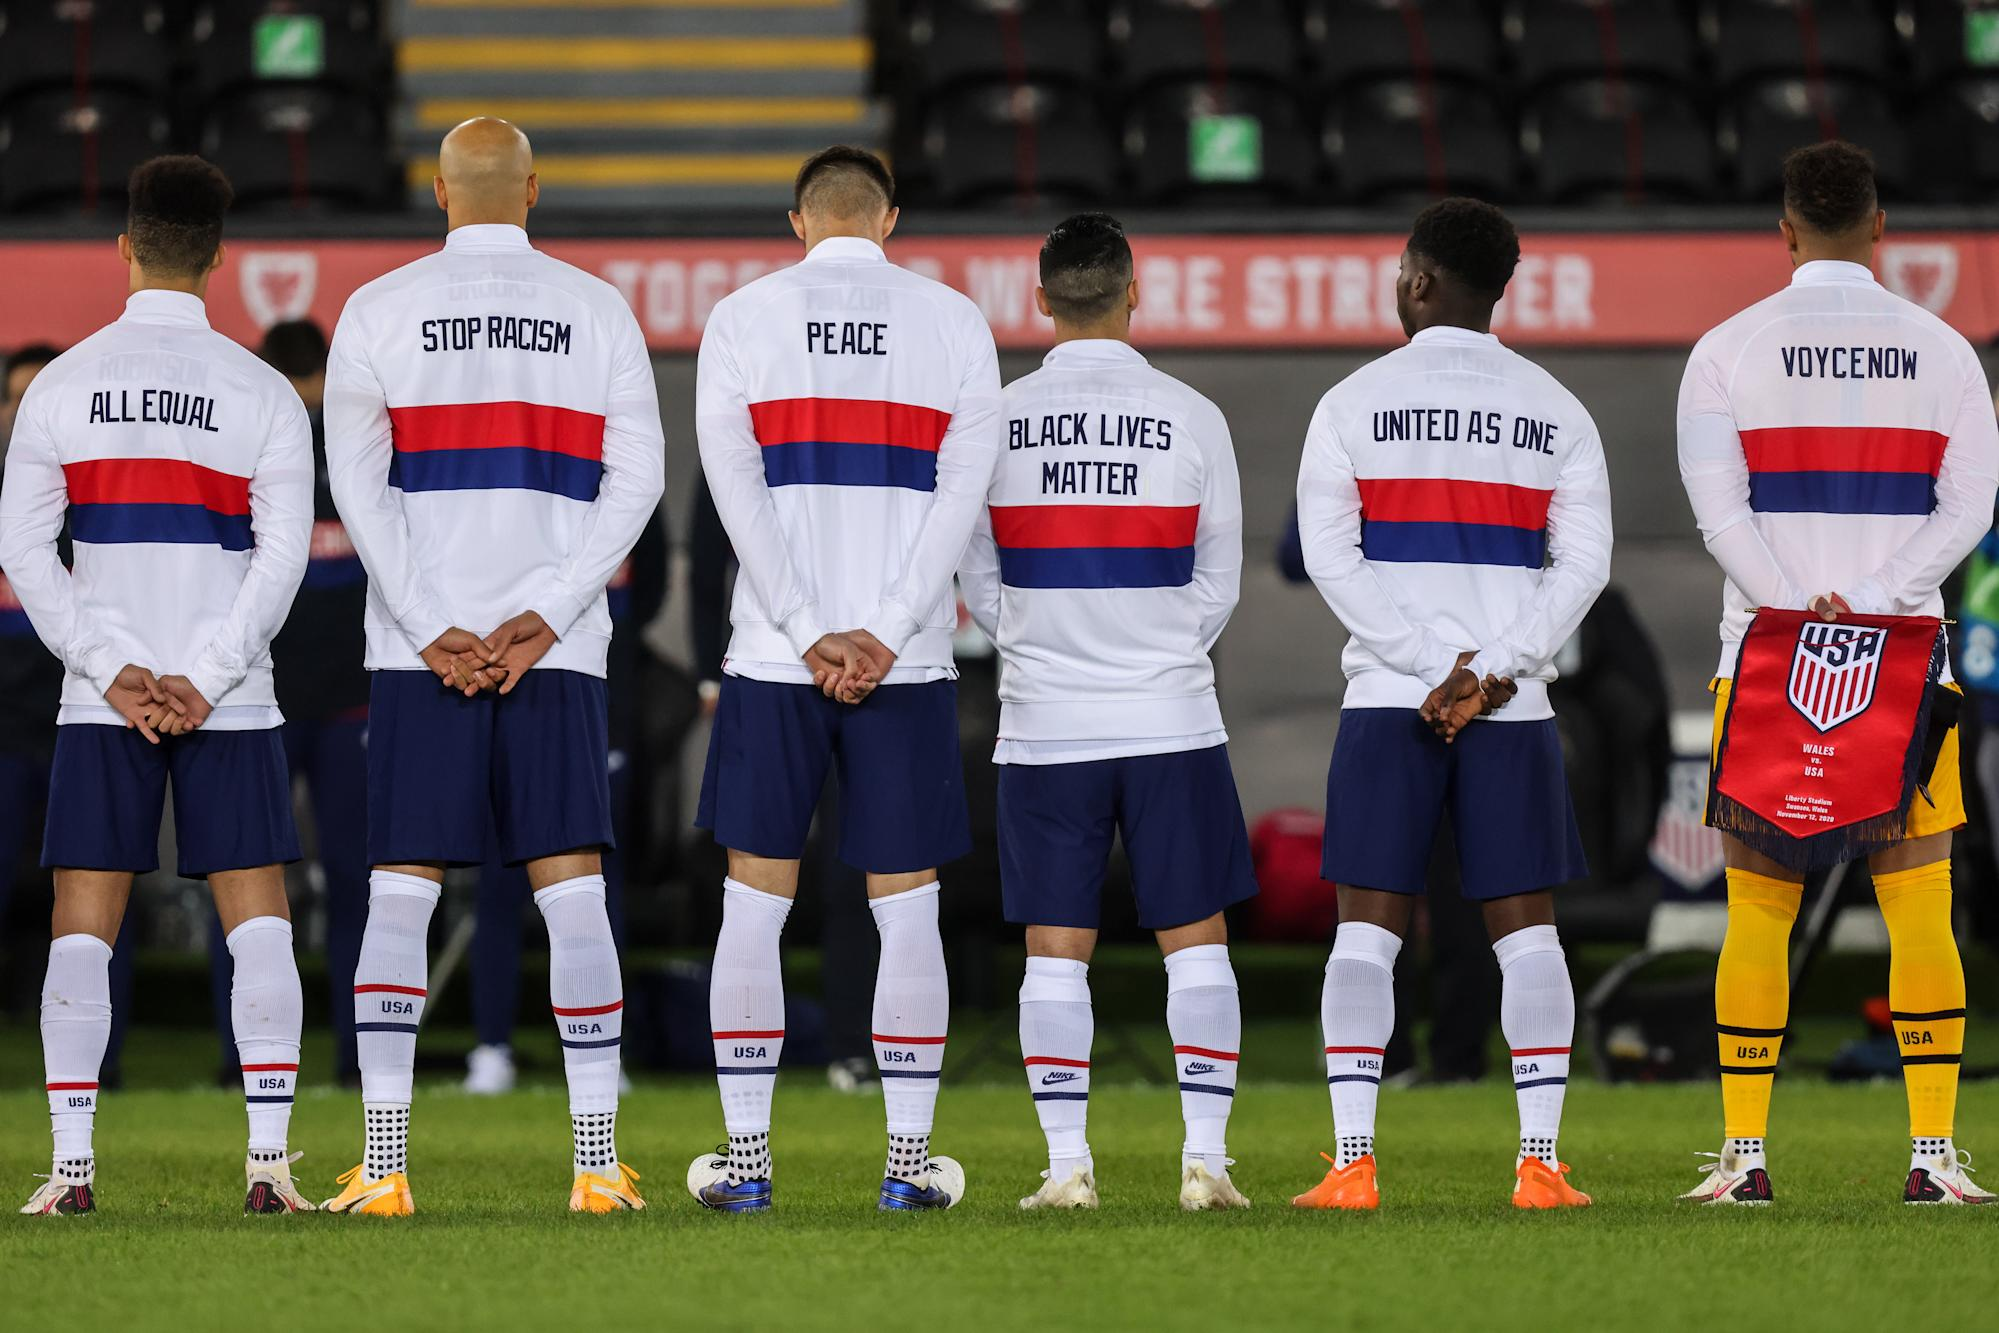 USMNT players wear 'Be the Change' jackets before Wales friendly